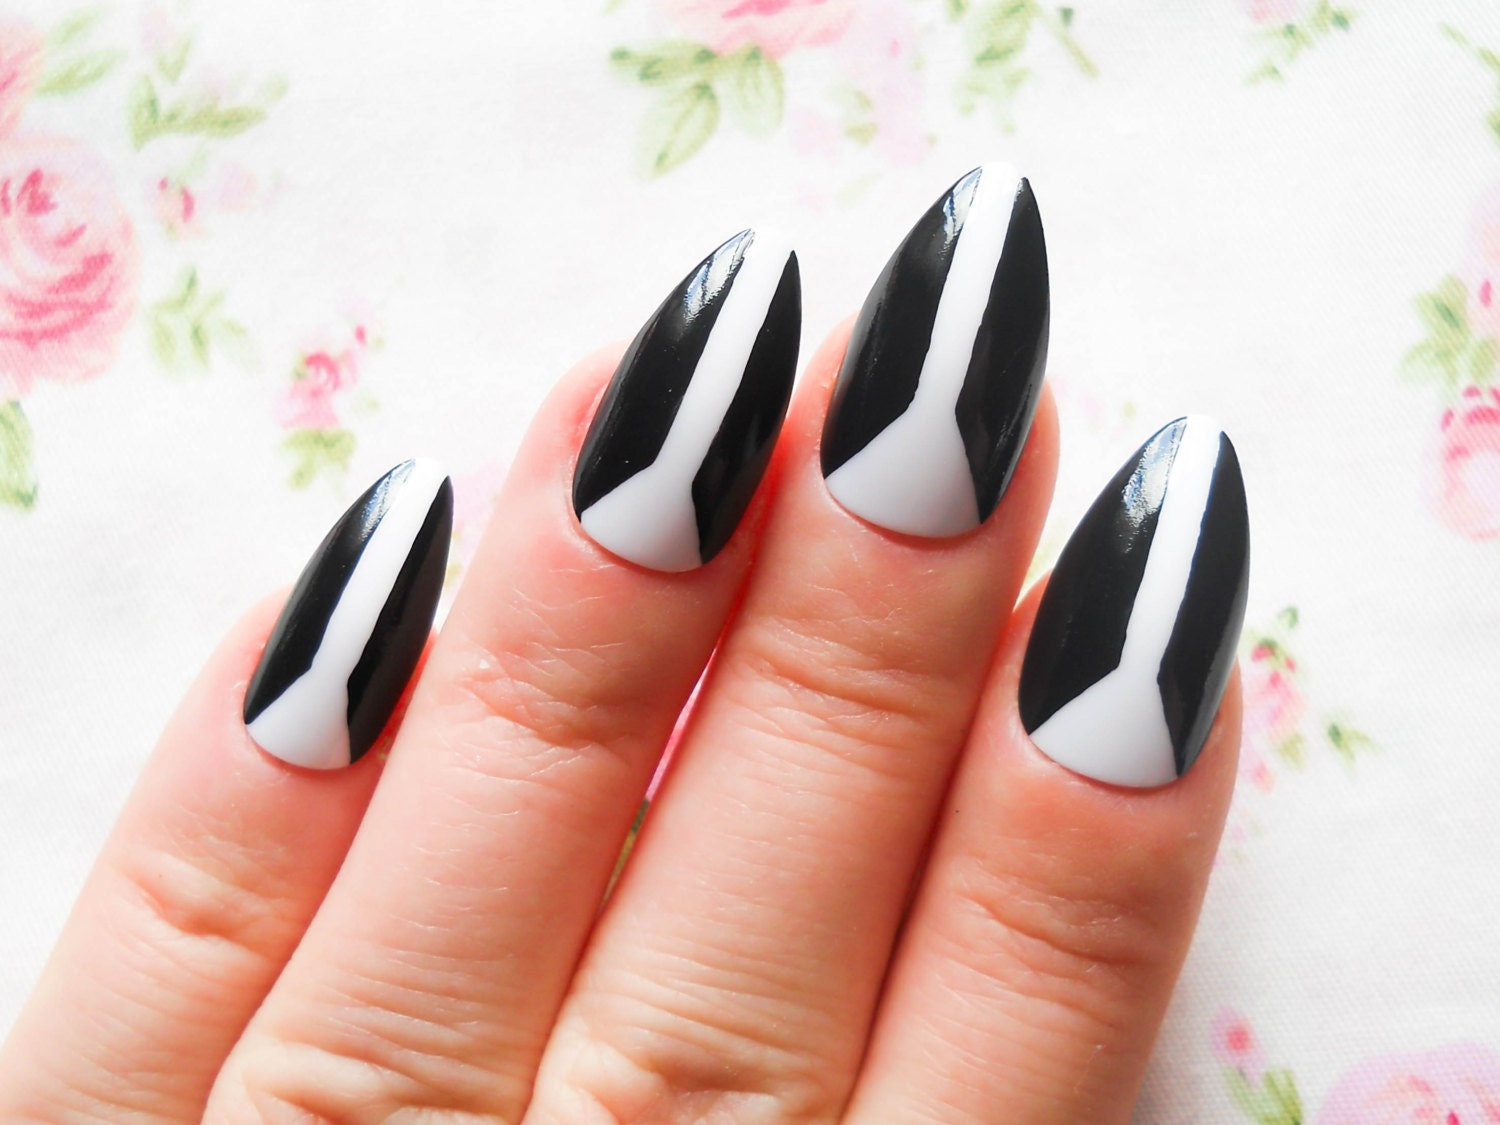 Abstract Nails / Fake Nails / Stiletto Nails / Press on Nails ...